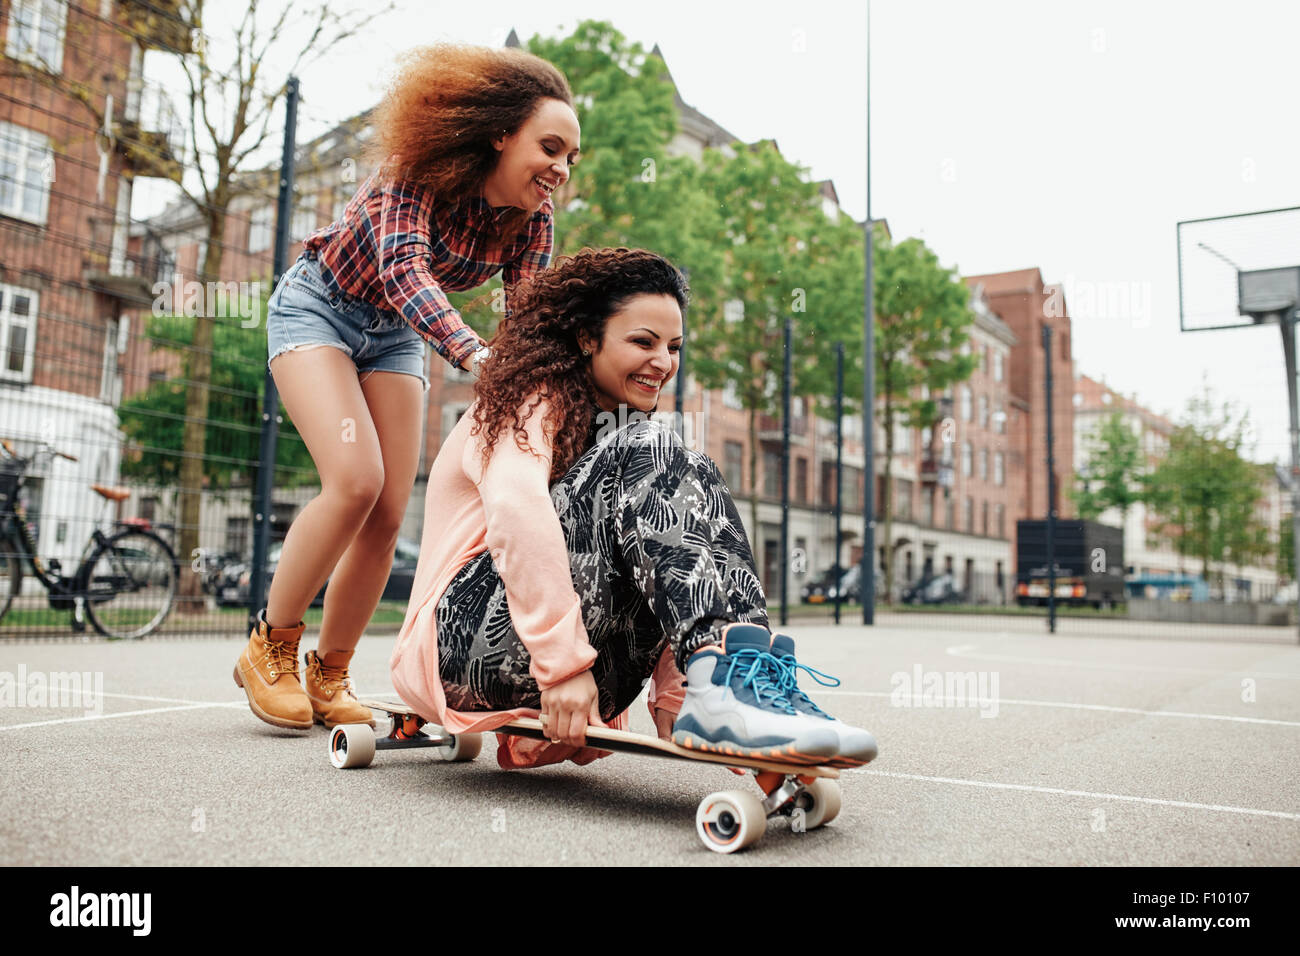 Happy young girl sitting on longboard being pushed by her friend. Young women enjoying skating outdoor. - Stock Image